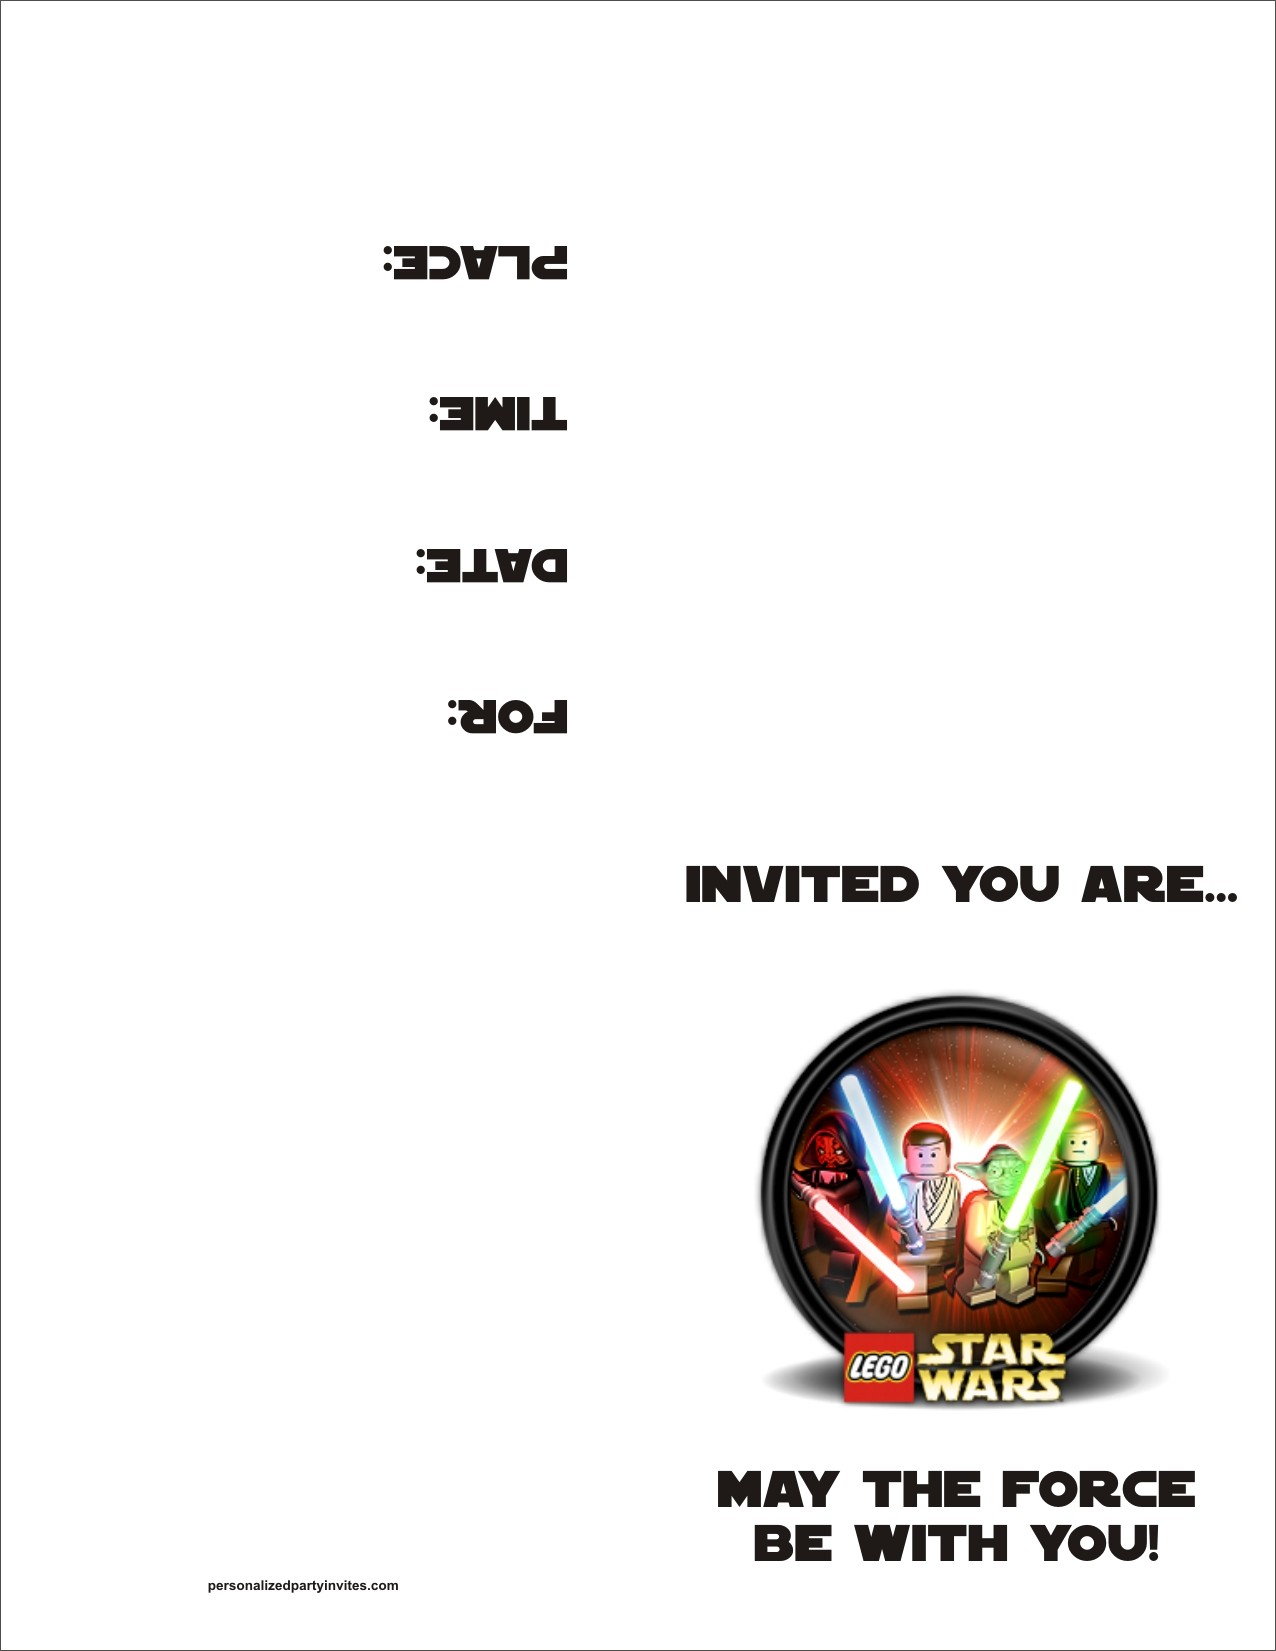 graphic regarding Star Wars Birthday Card Printable Free named Lego Star Wars Cost-free Printable Birthday Social gathering Invitation